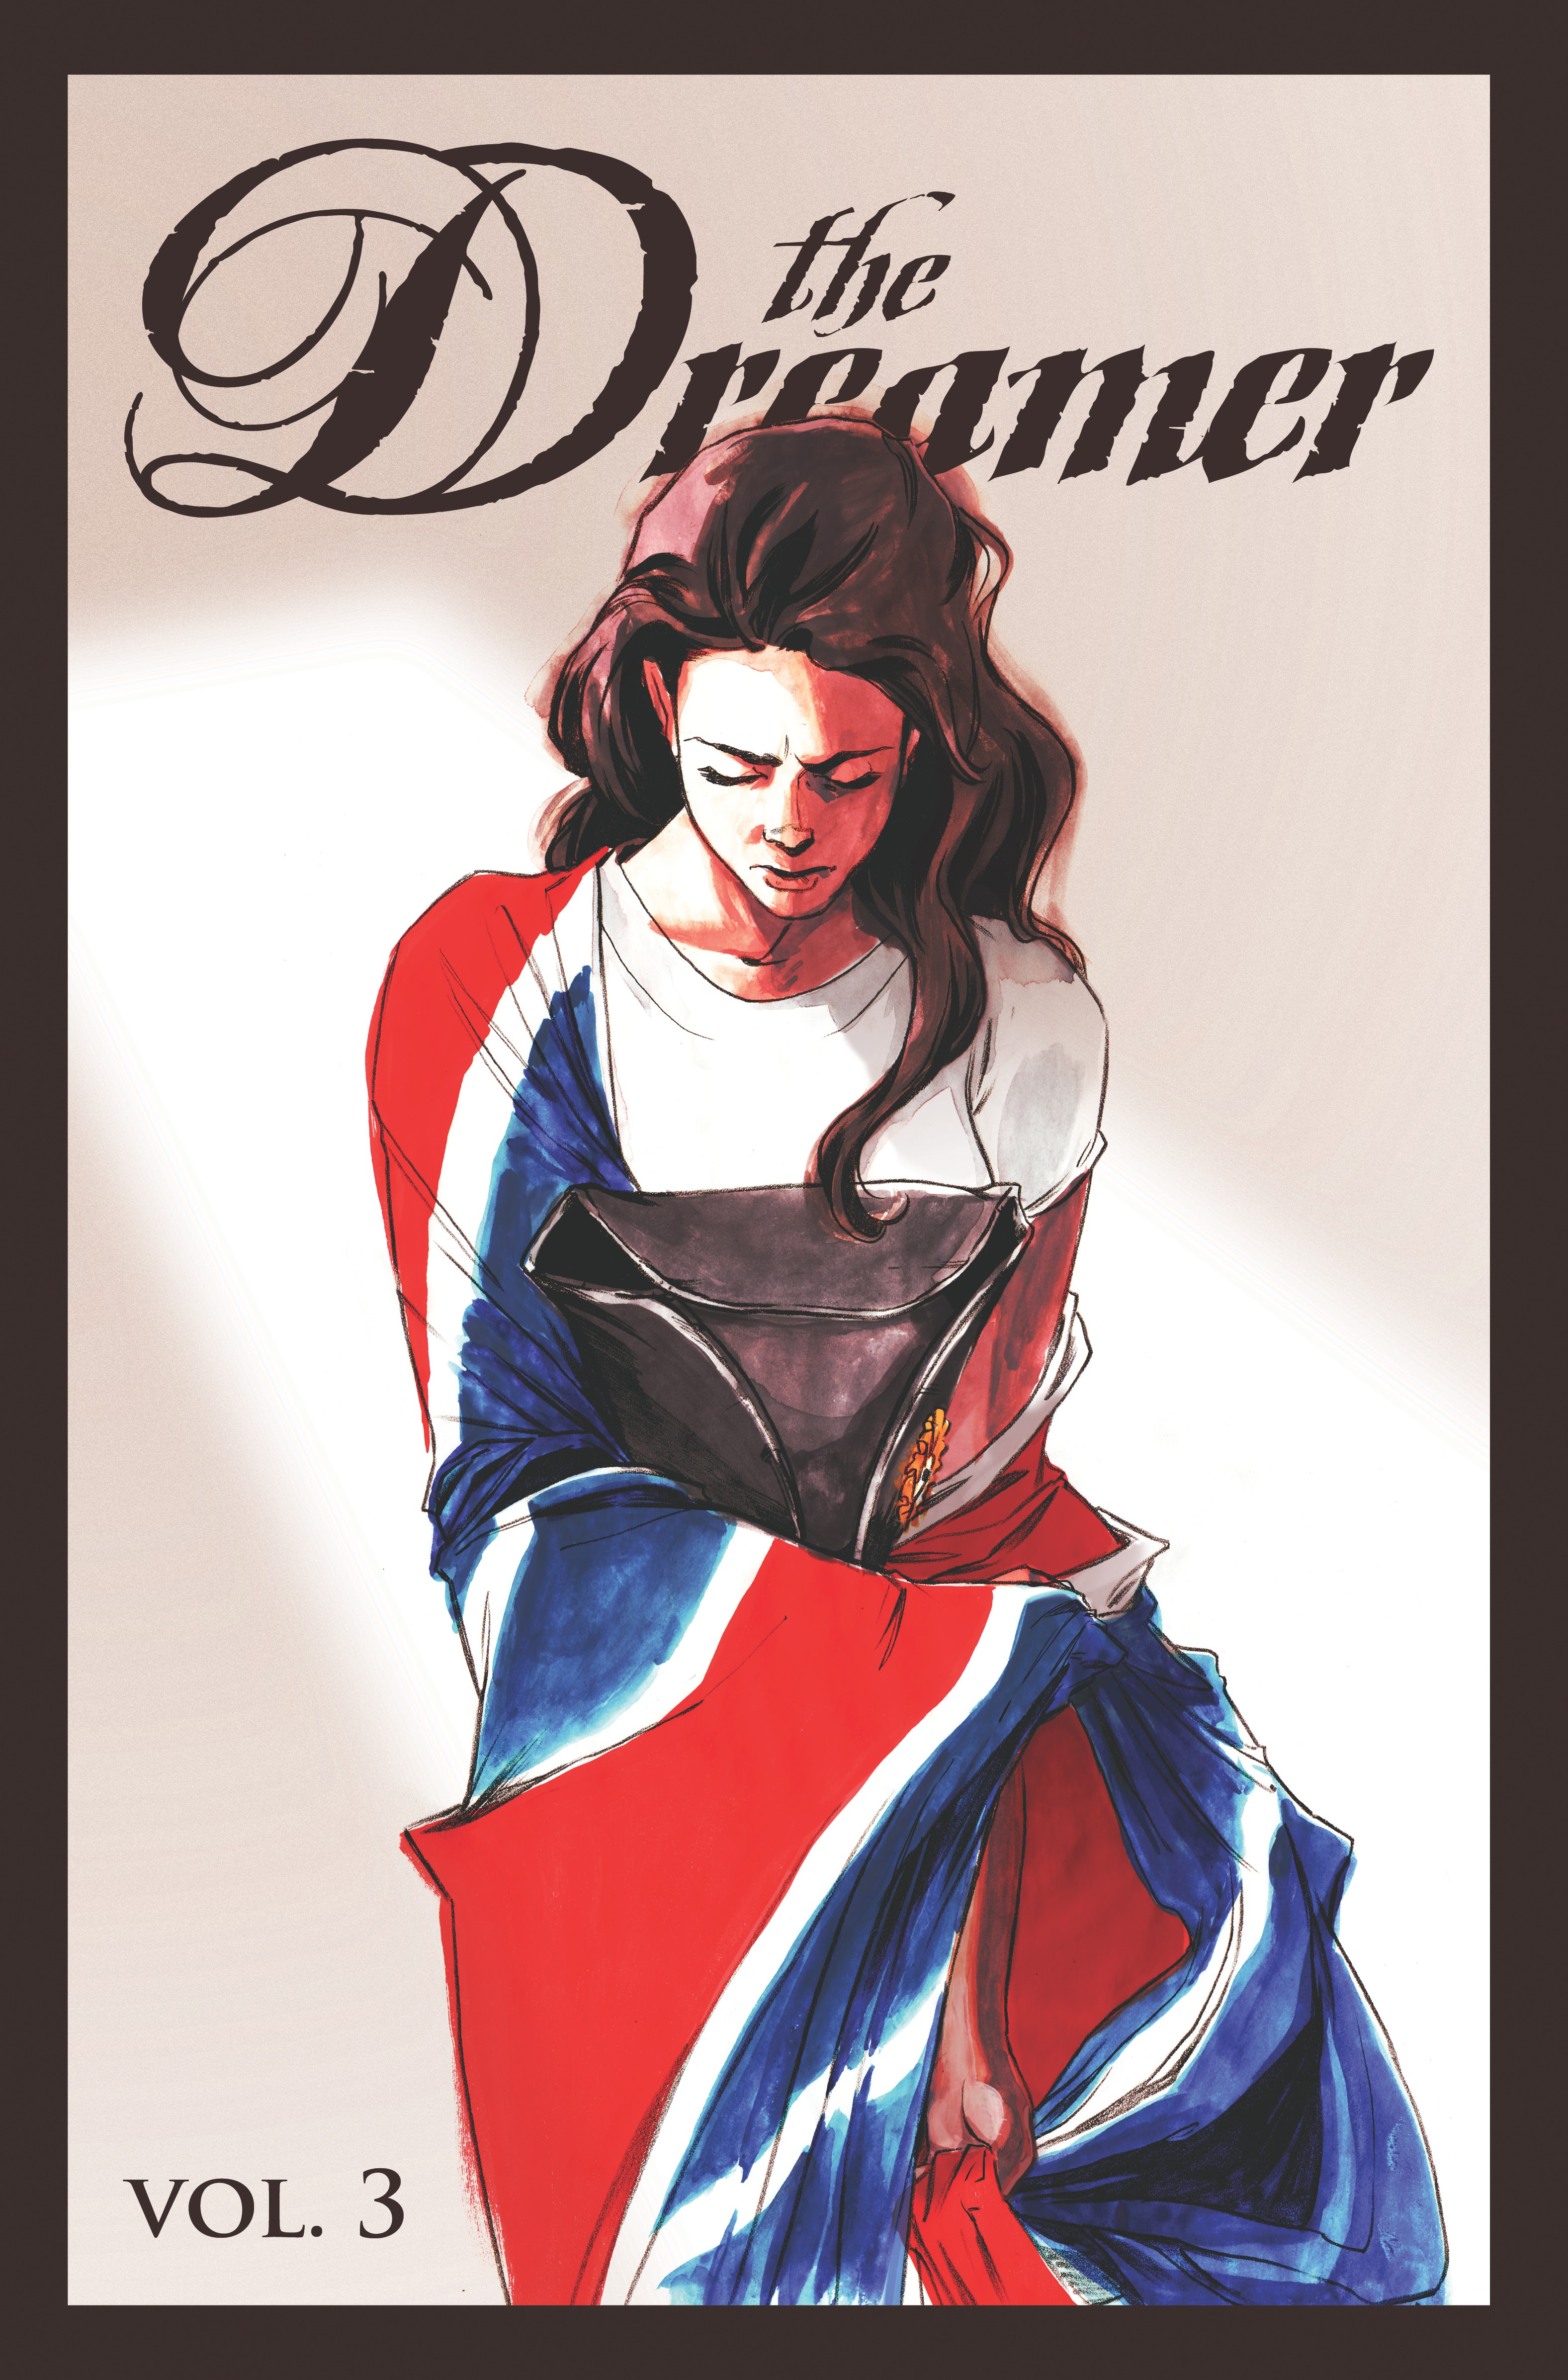 The Dreamer Volume 3 Coming March 2014